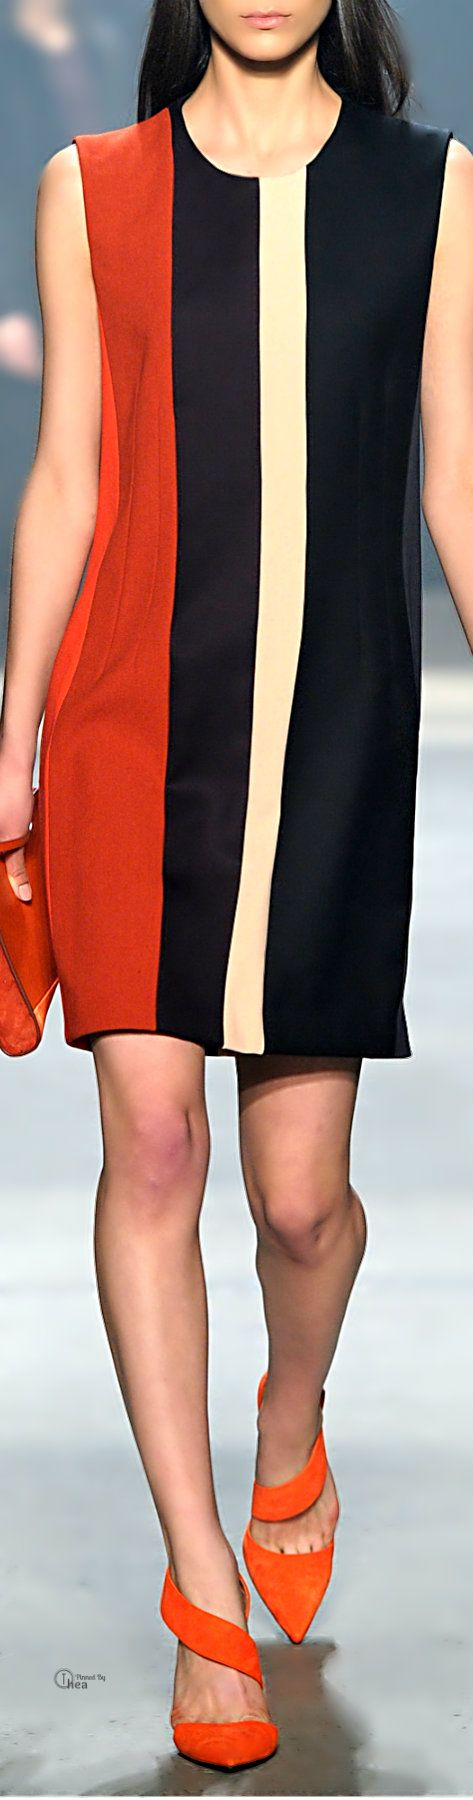 Narciso Rodriguez ● Fall 2014, Wool Crepe Dress